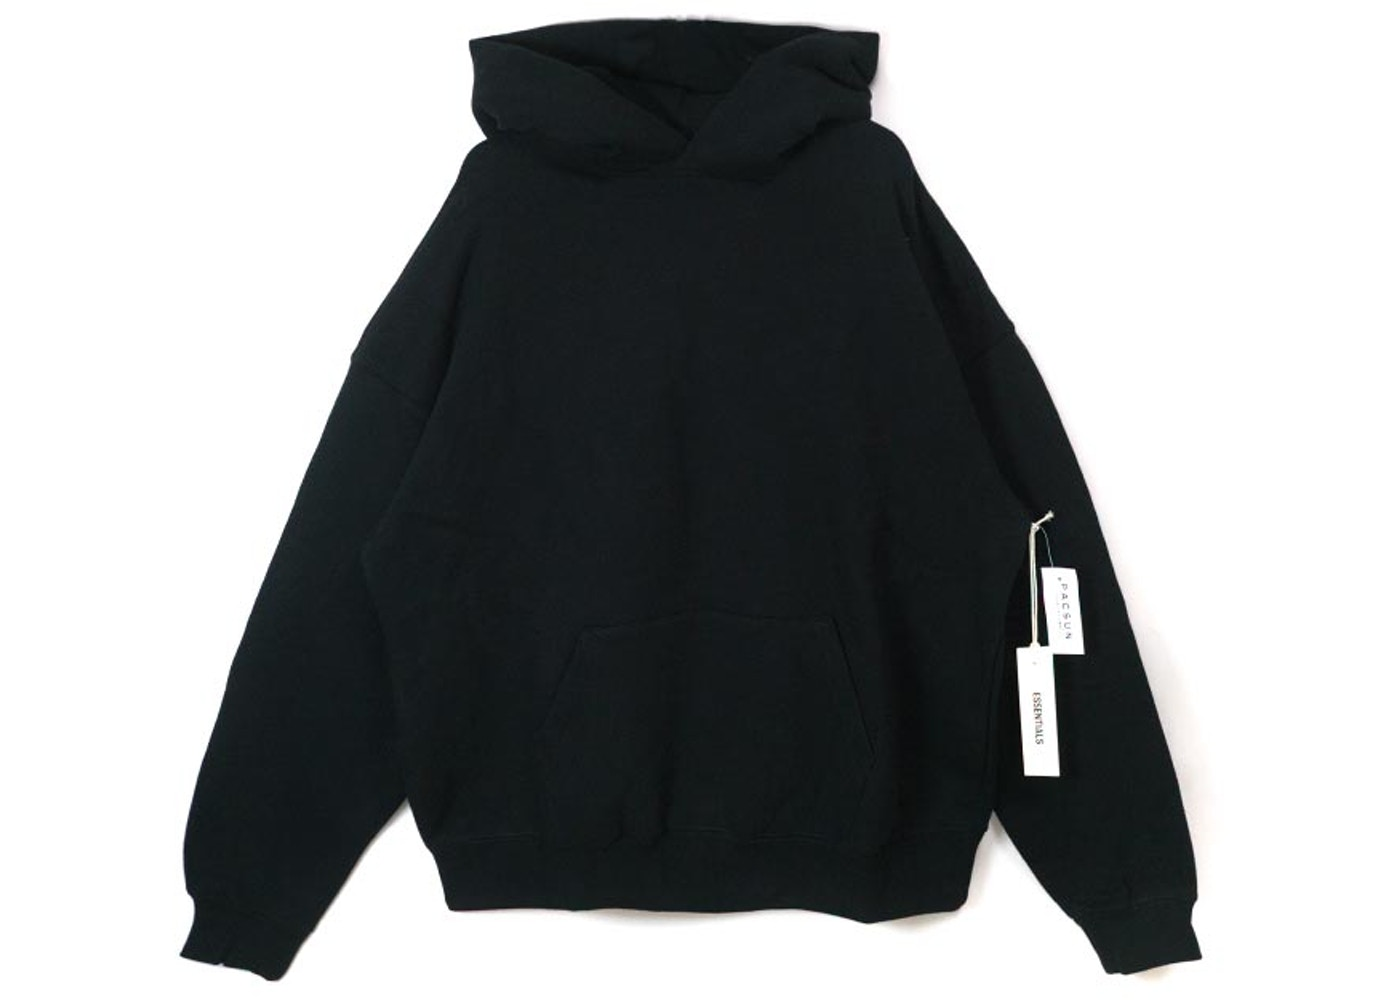 00ad9094 FEAR OF GOD Essentials Graphic Pullover Hoodie Black - Essentials